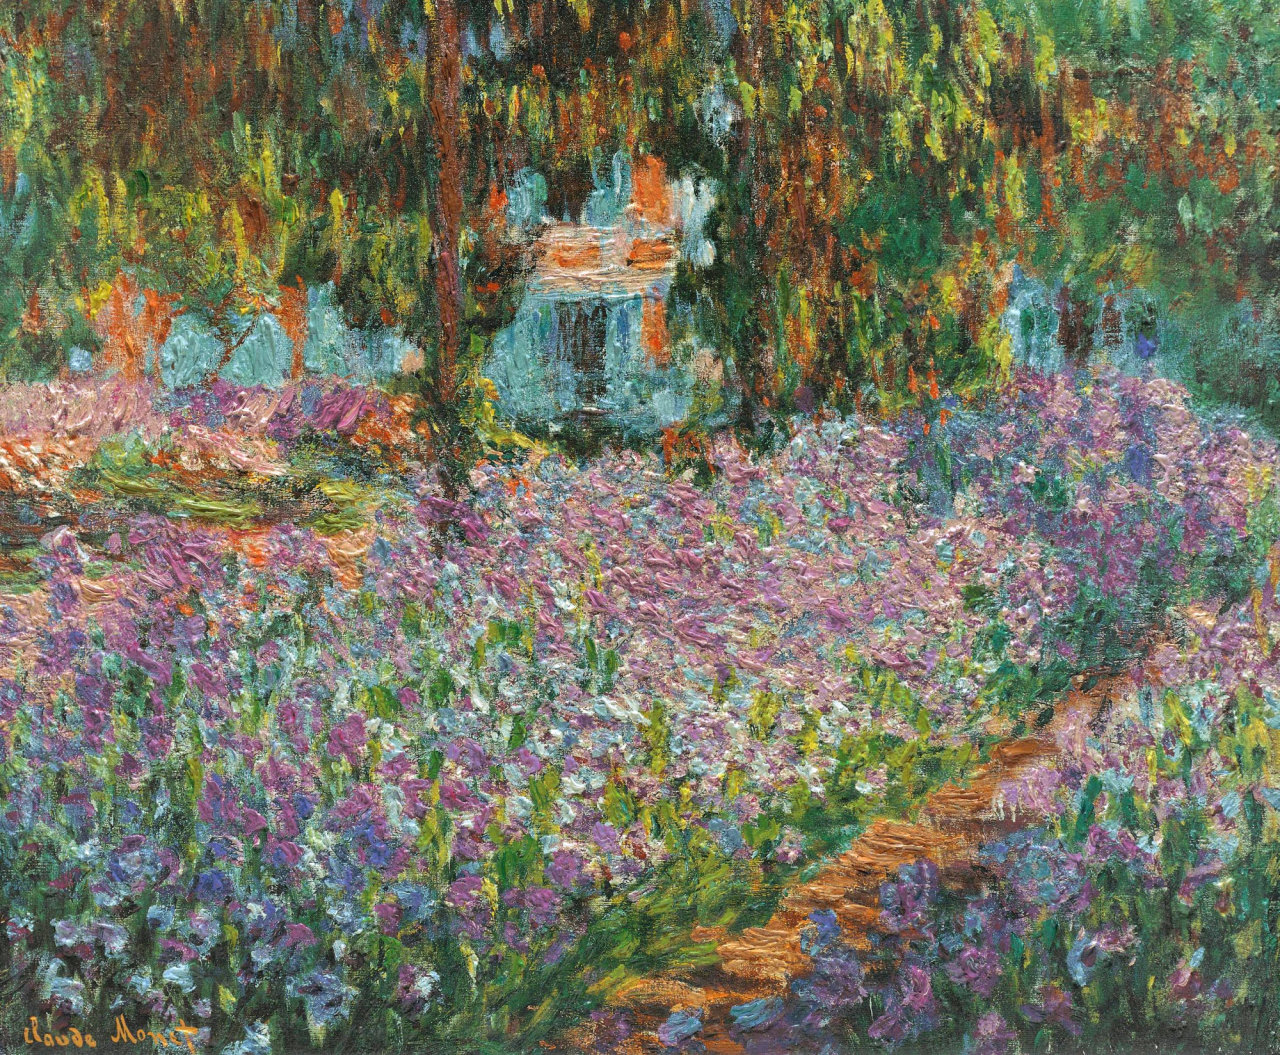 seabois:  Claude Monet, Irises in Monet's Garden, 1900.